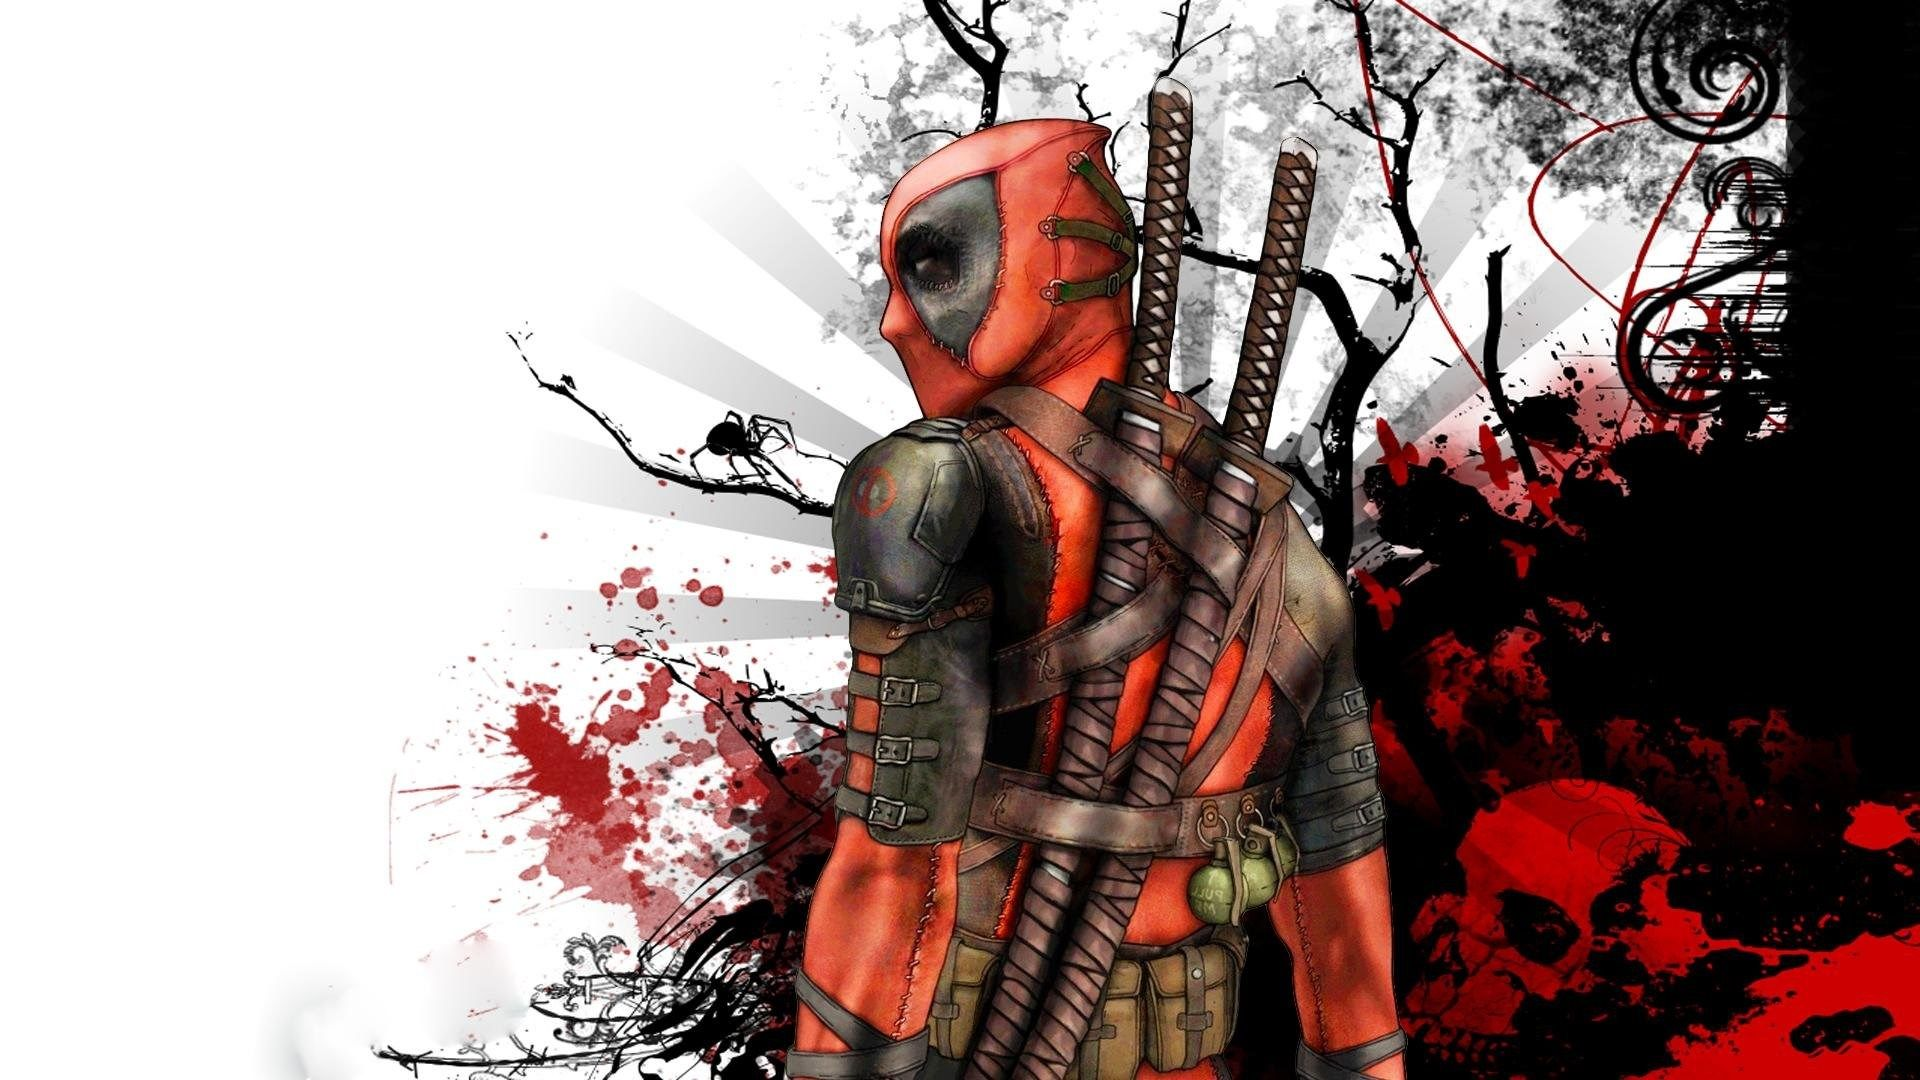 deadpool wallpaper pack 1080p hd Deadpool wallpaper Deadpool